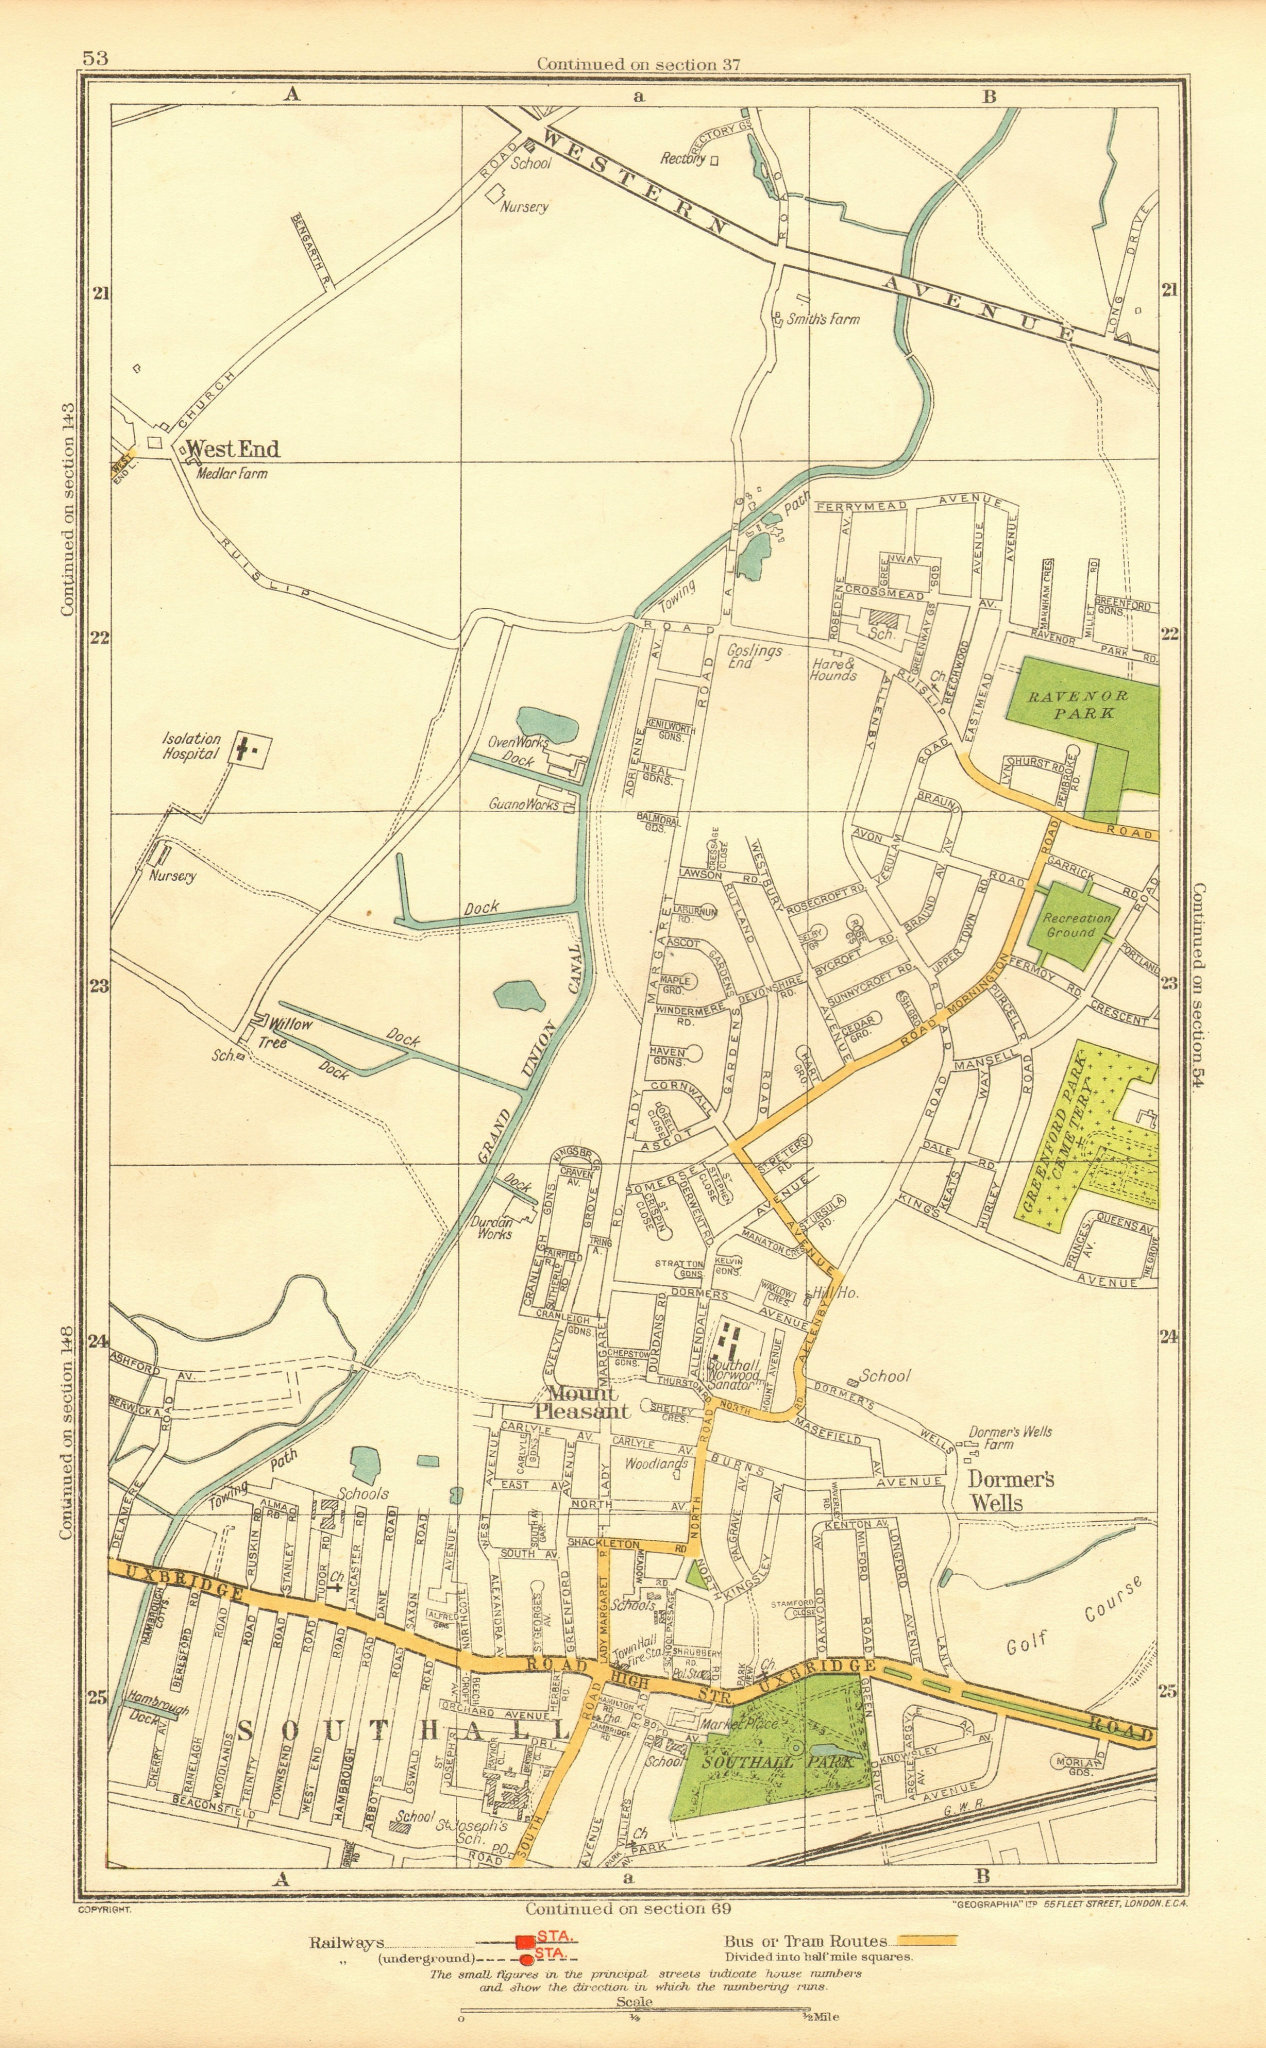 Associate Product MIDDLESEX. Dormer's Wells Mount Pleasant Southall West End 1937 old map